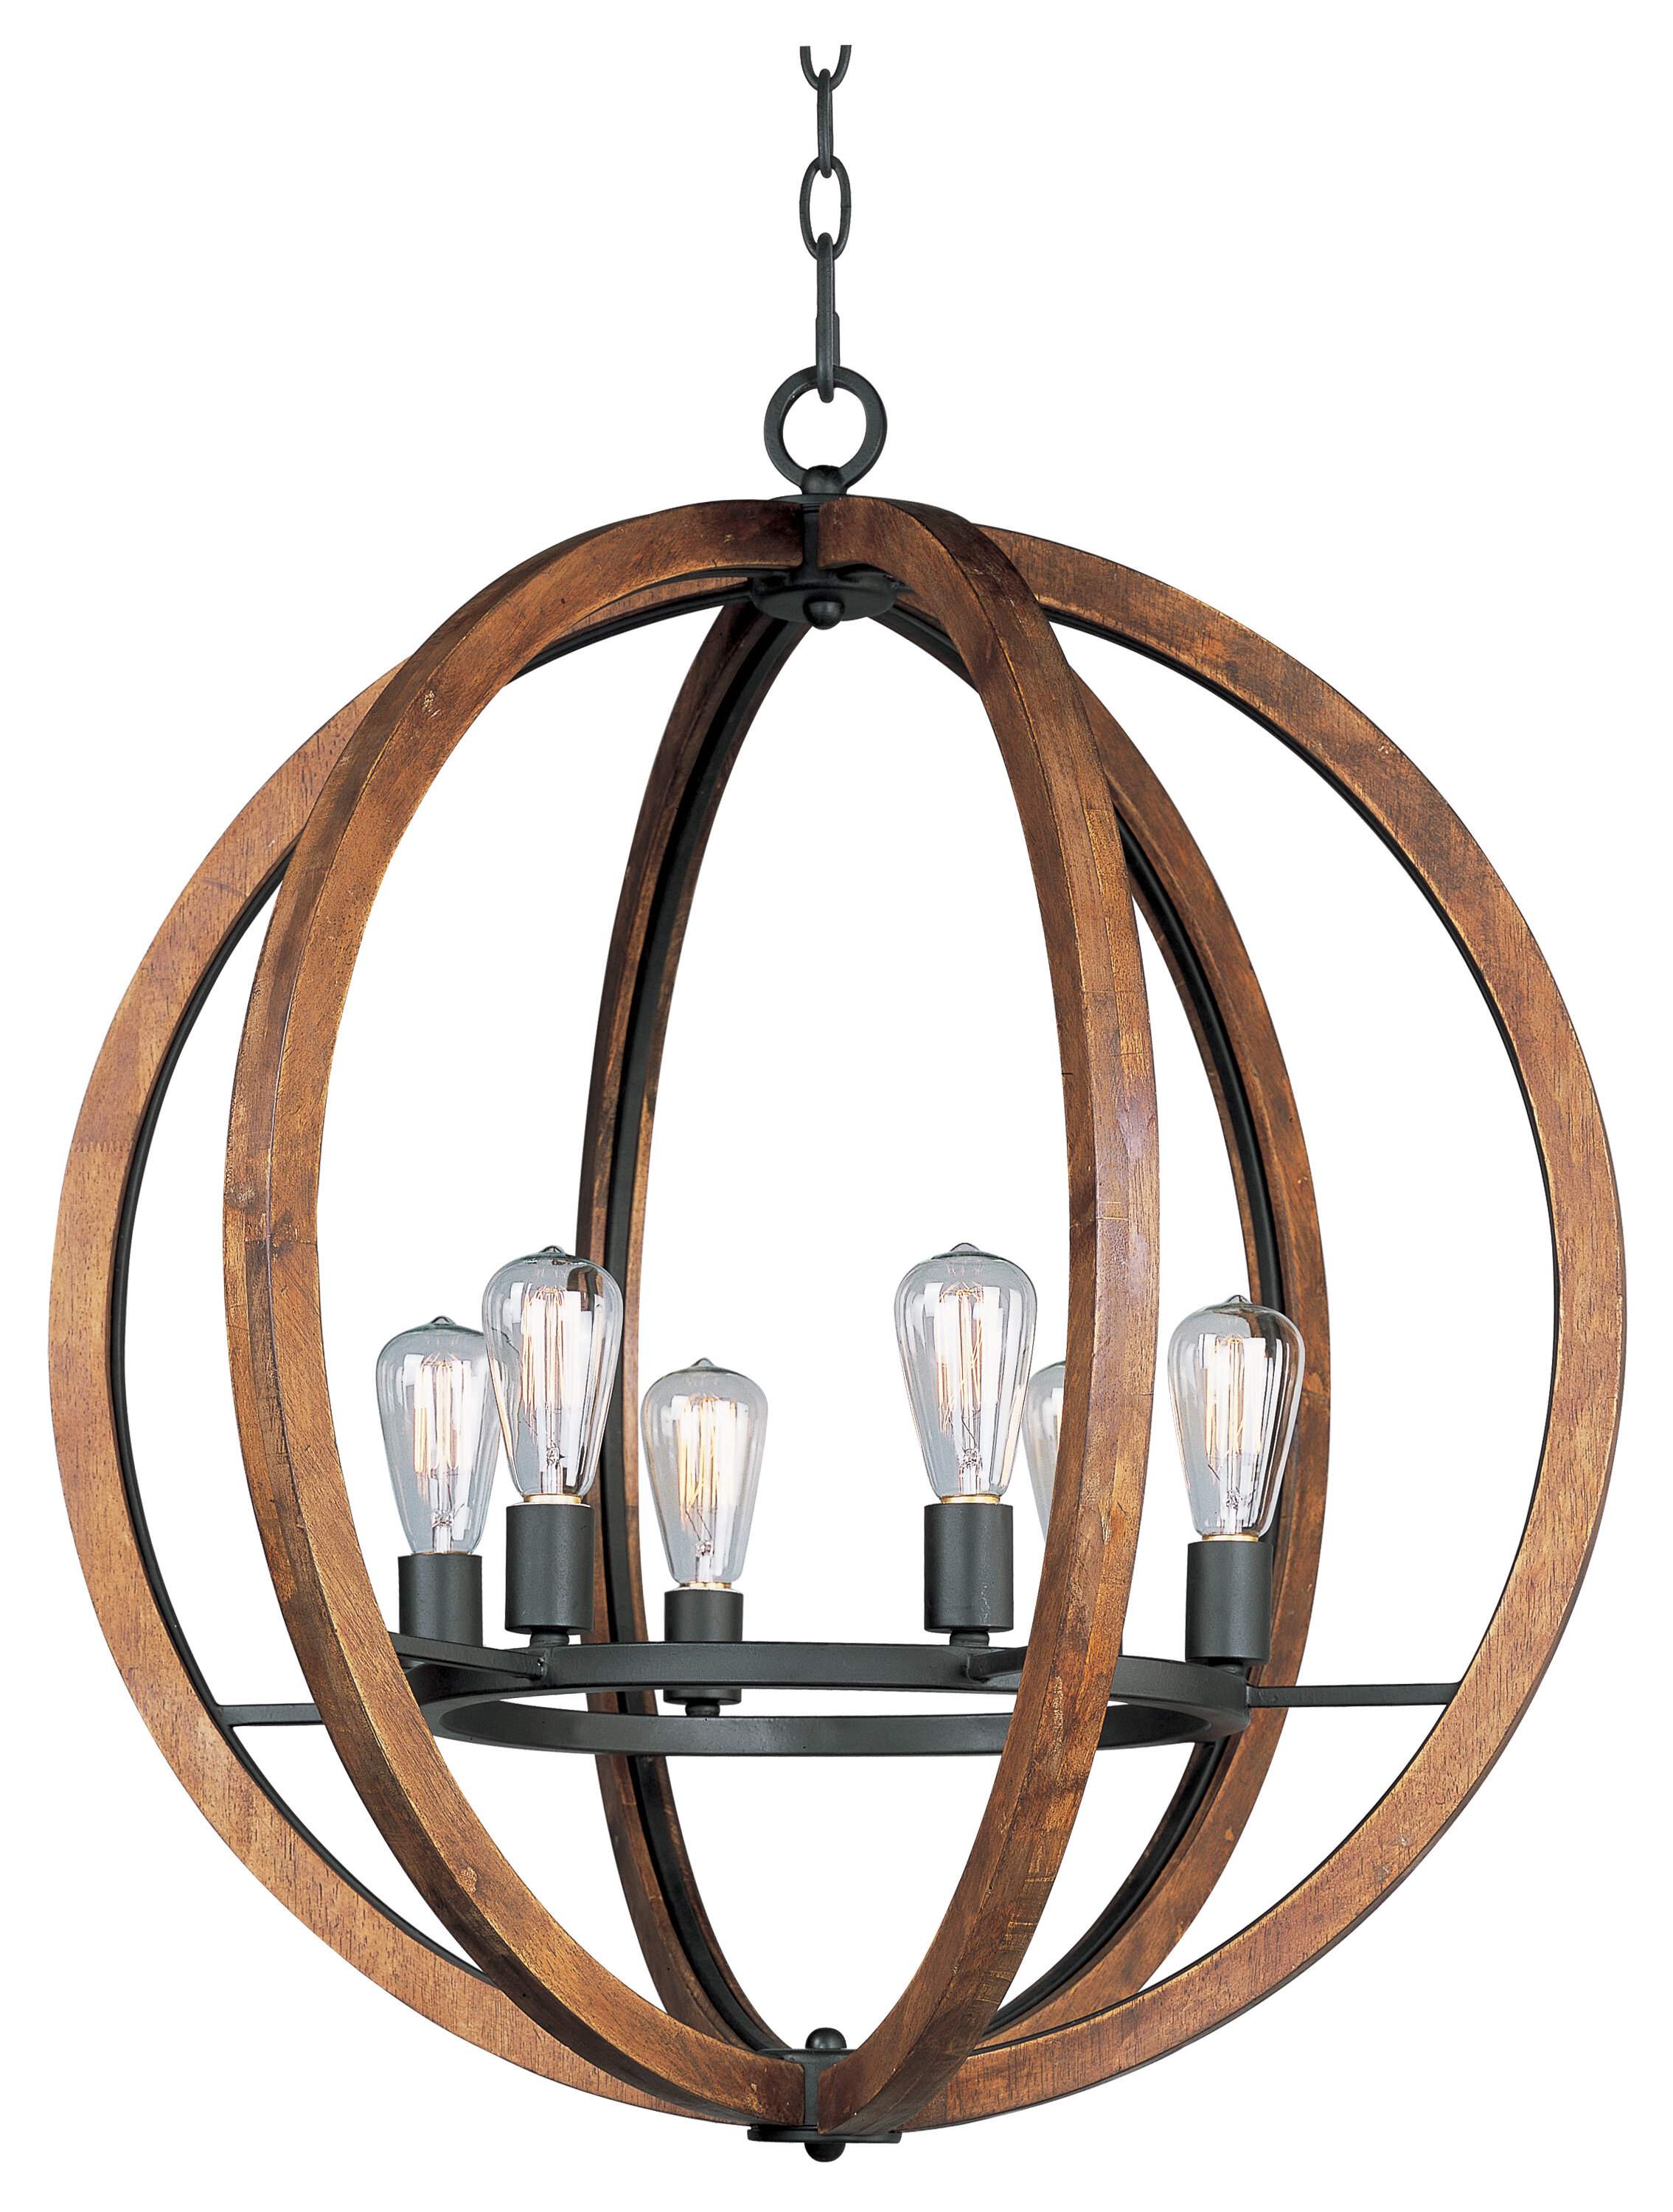 Gilford 6 Light Candle Style Globe Chandelier Reviews Joss Main